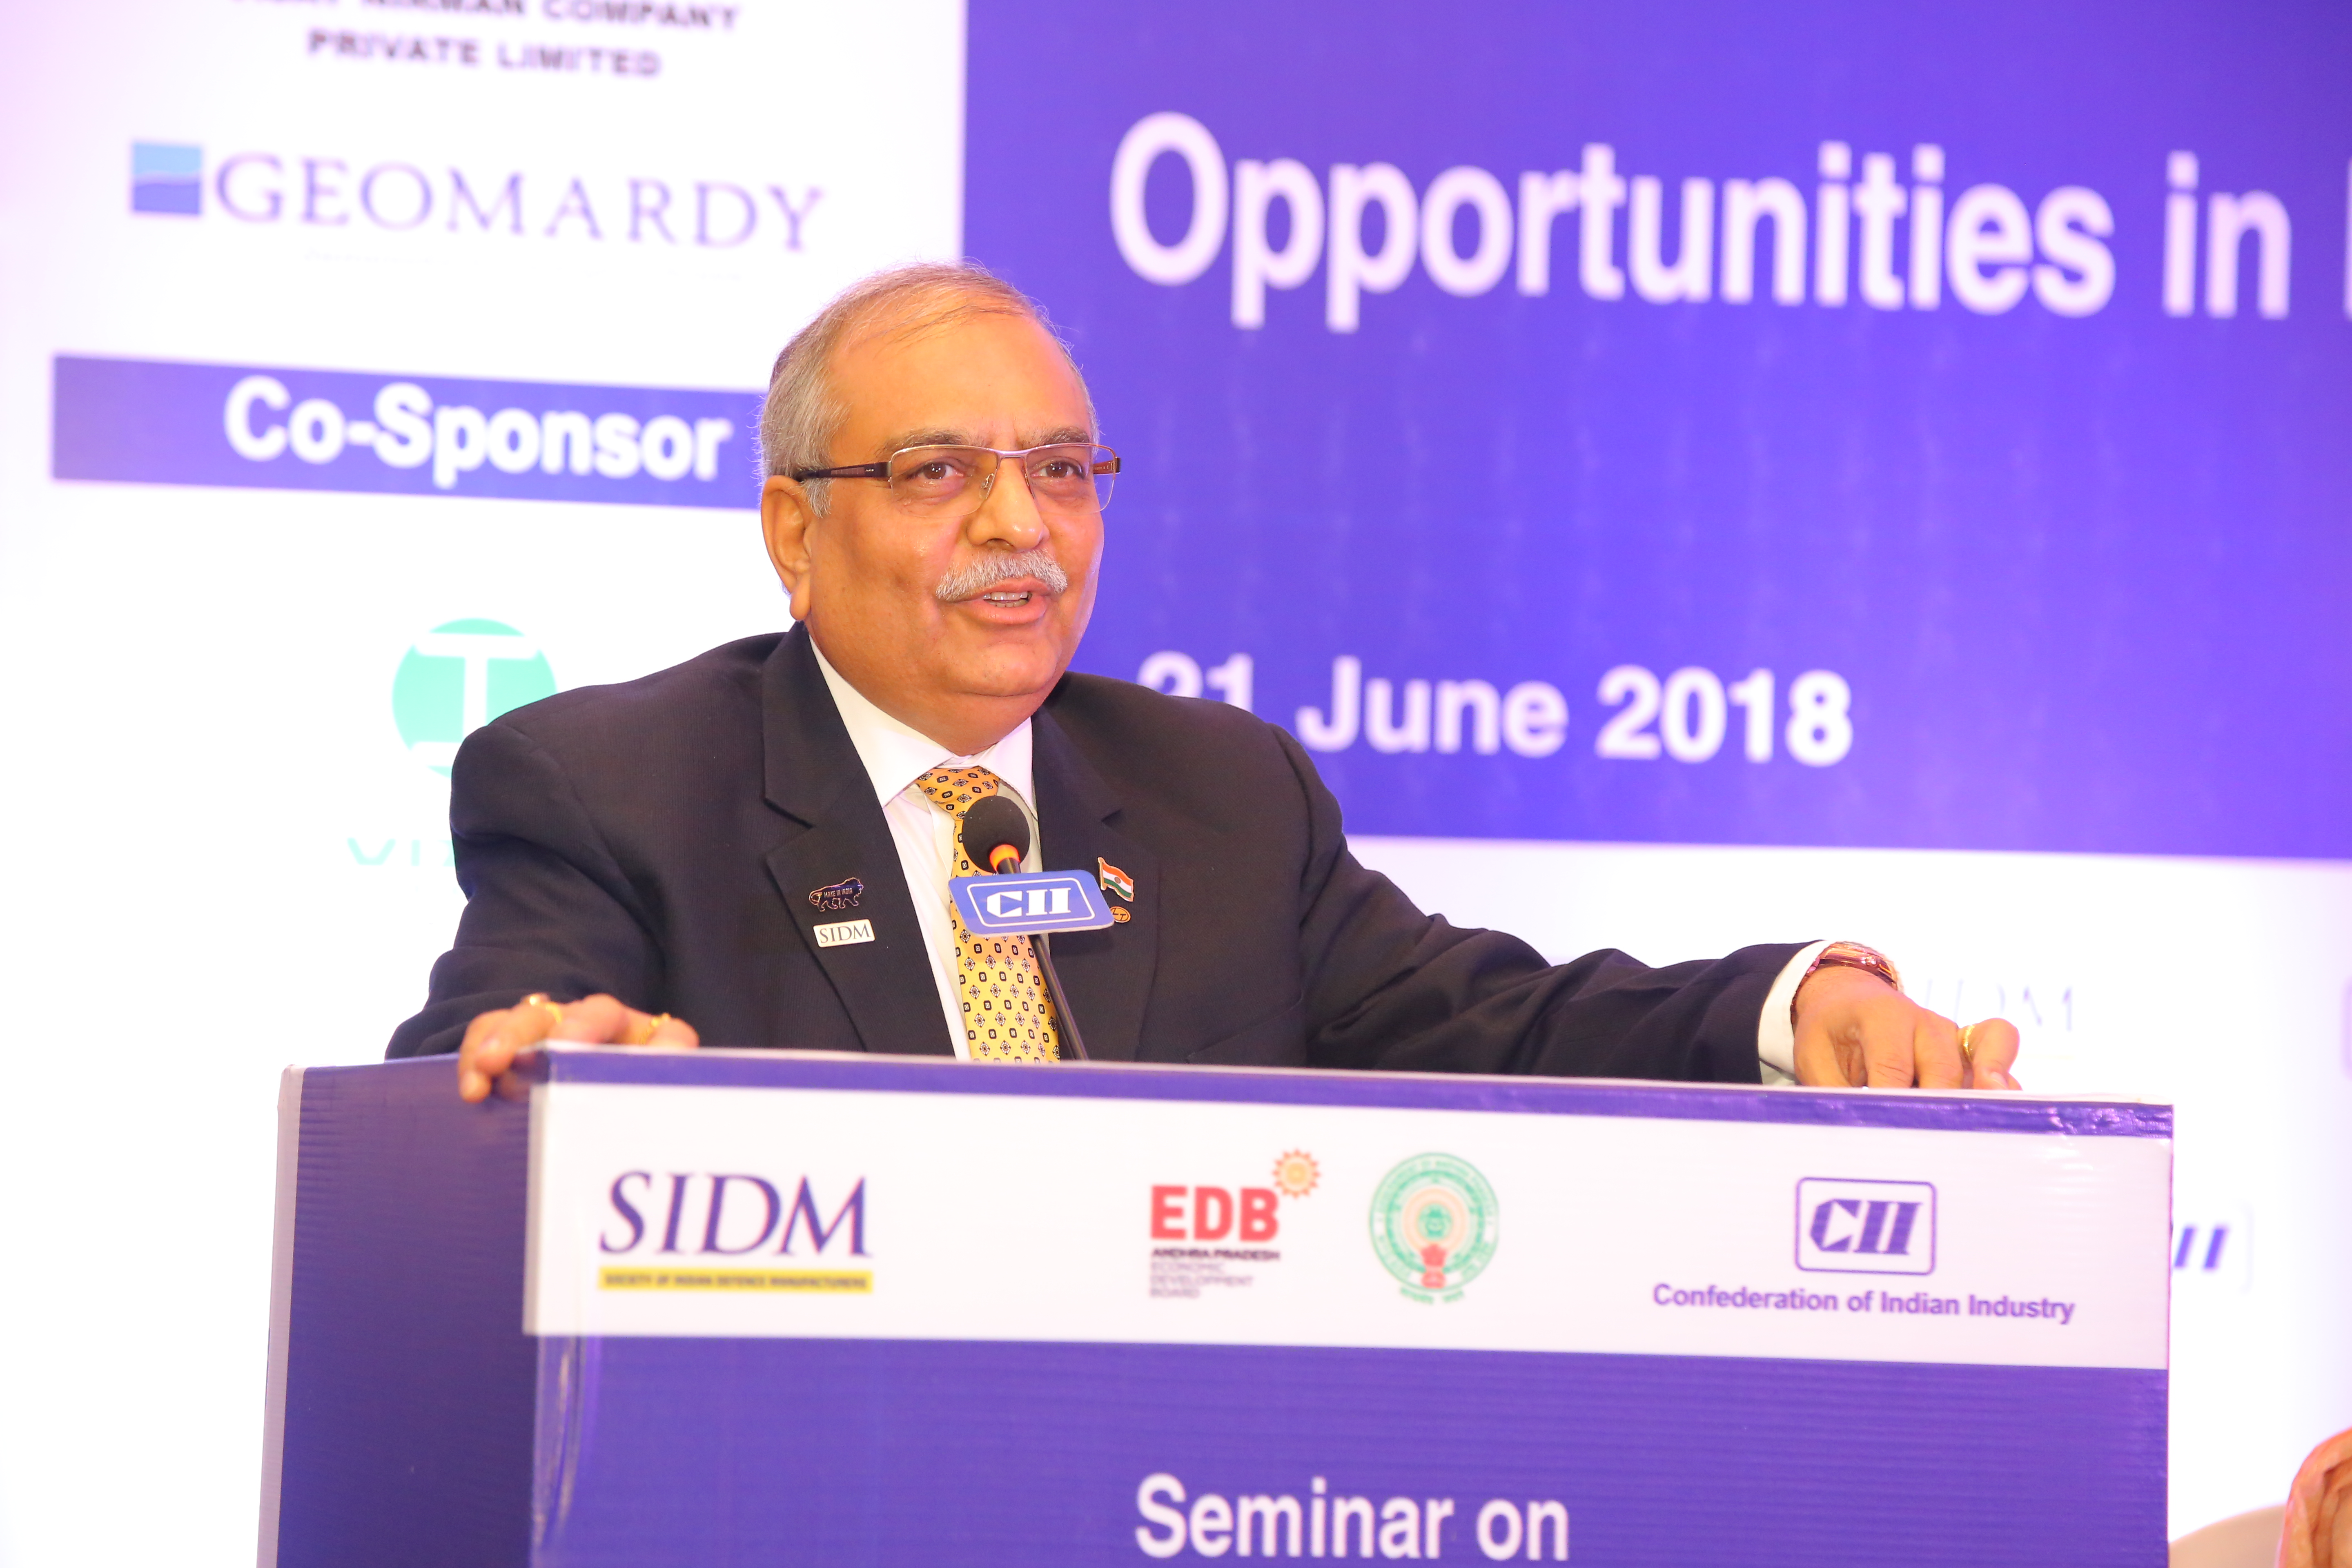 Jayant D Patil, Vice President, SIDM addressing the opening session at the Seminar on 'Opportunities in Defence & Aerospace for Industry', Visakhapatnam, 21 June 2018